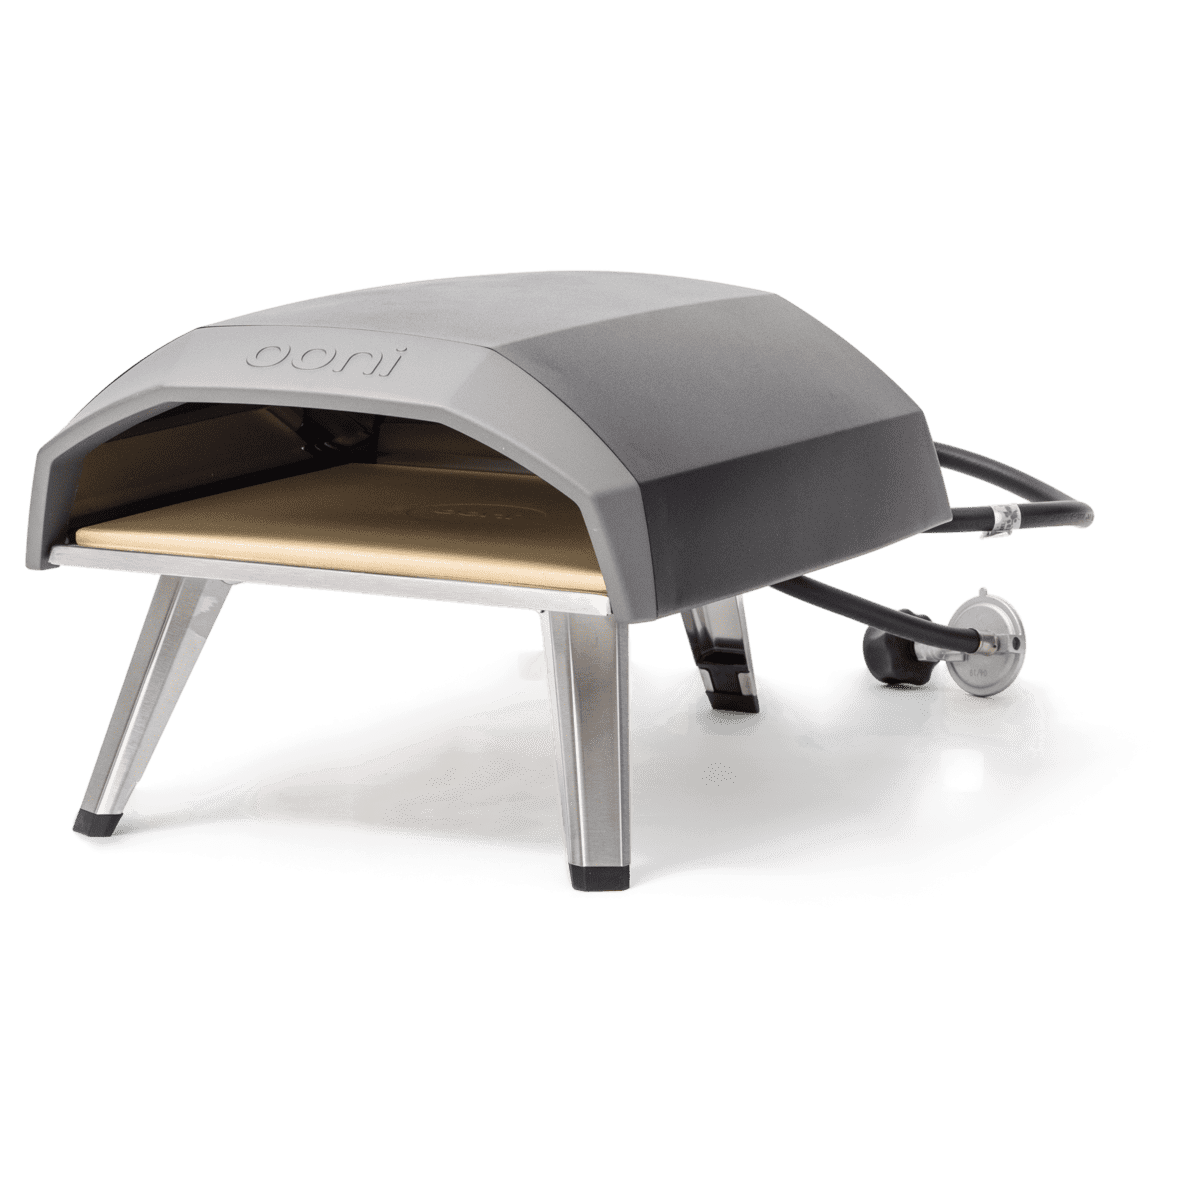 The Best Portable Outdoor Pizza Ovens Cook S Illustrated